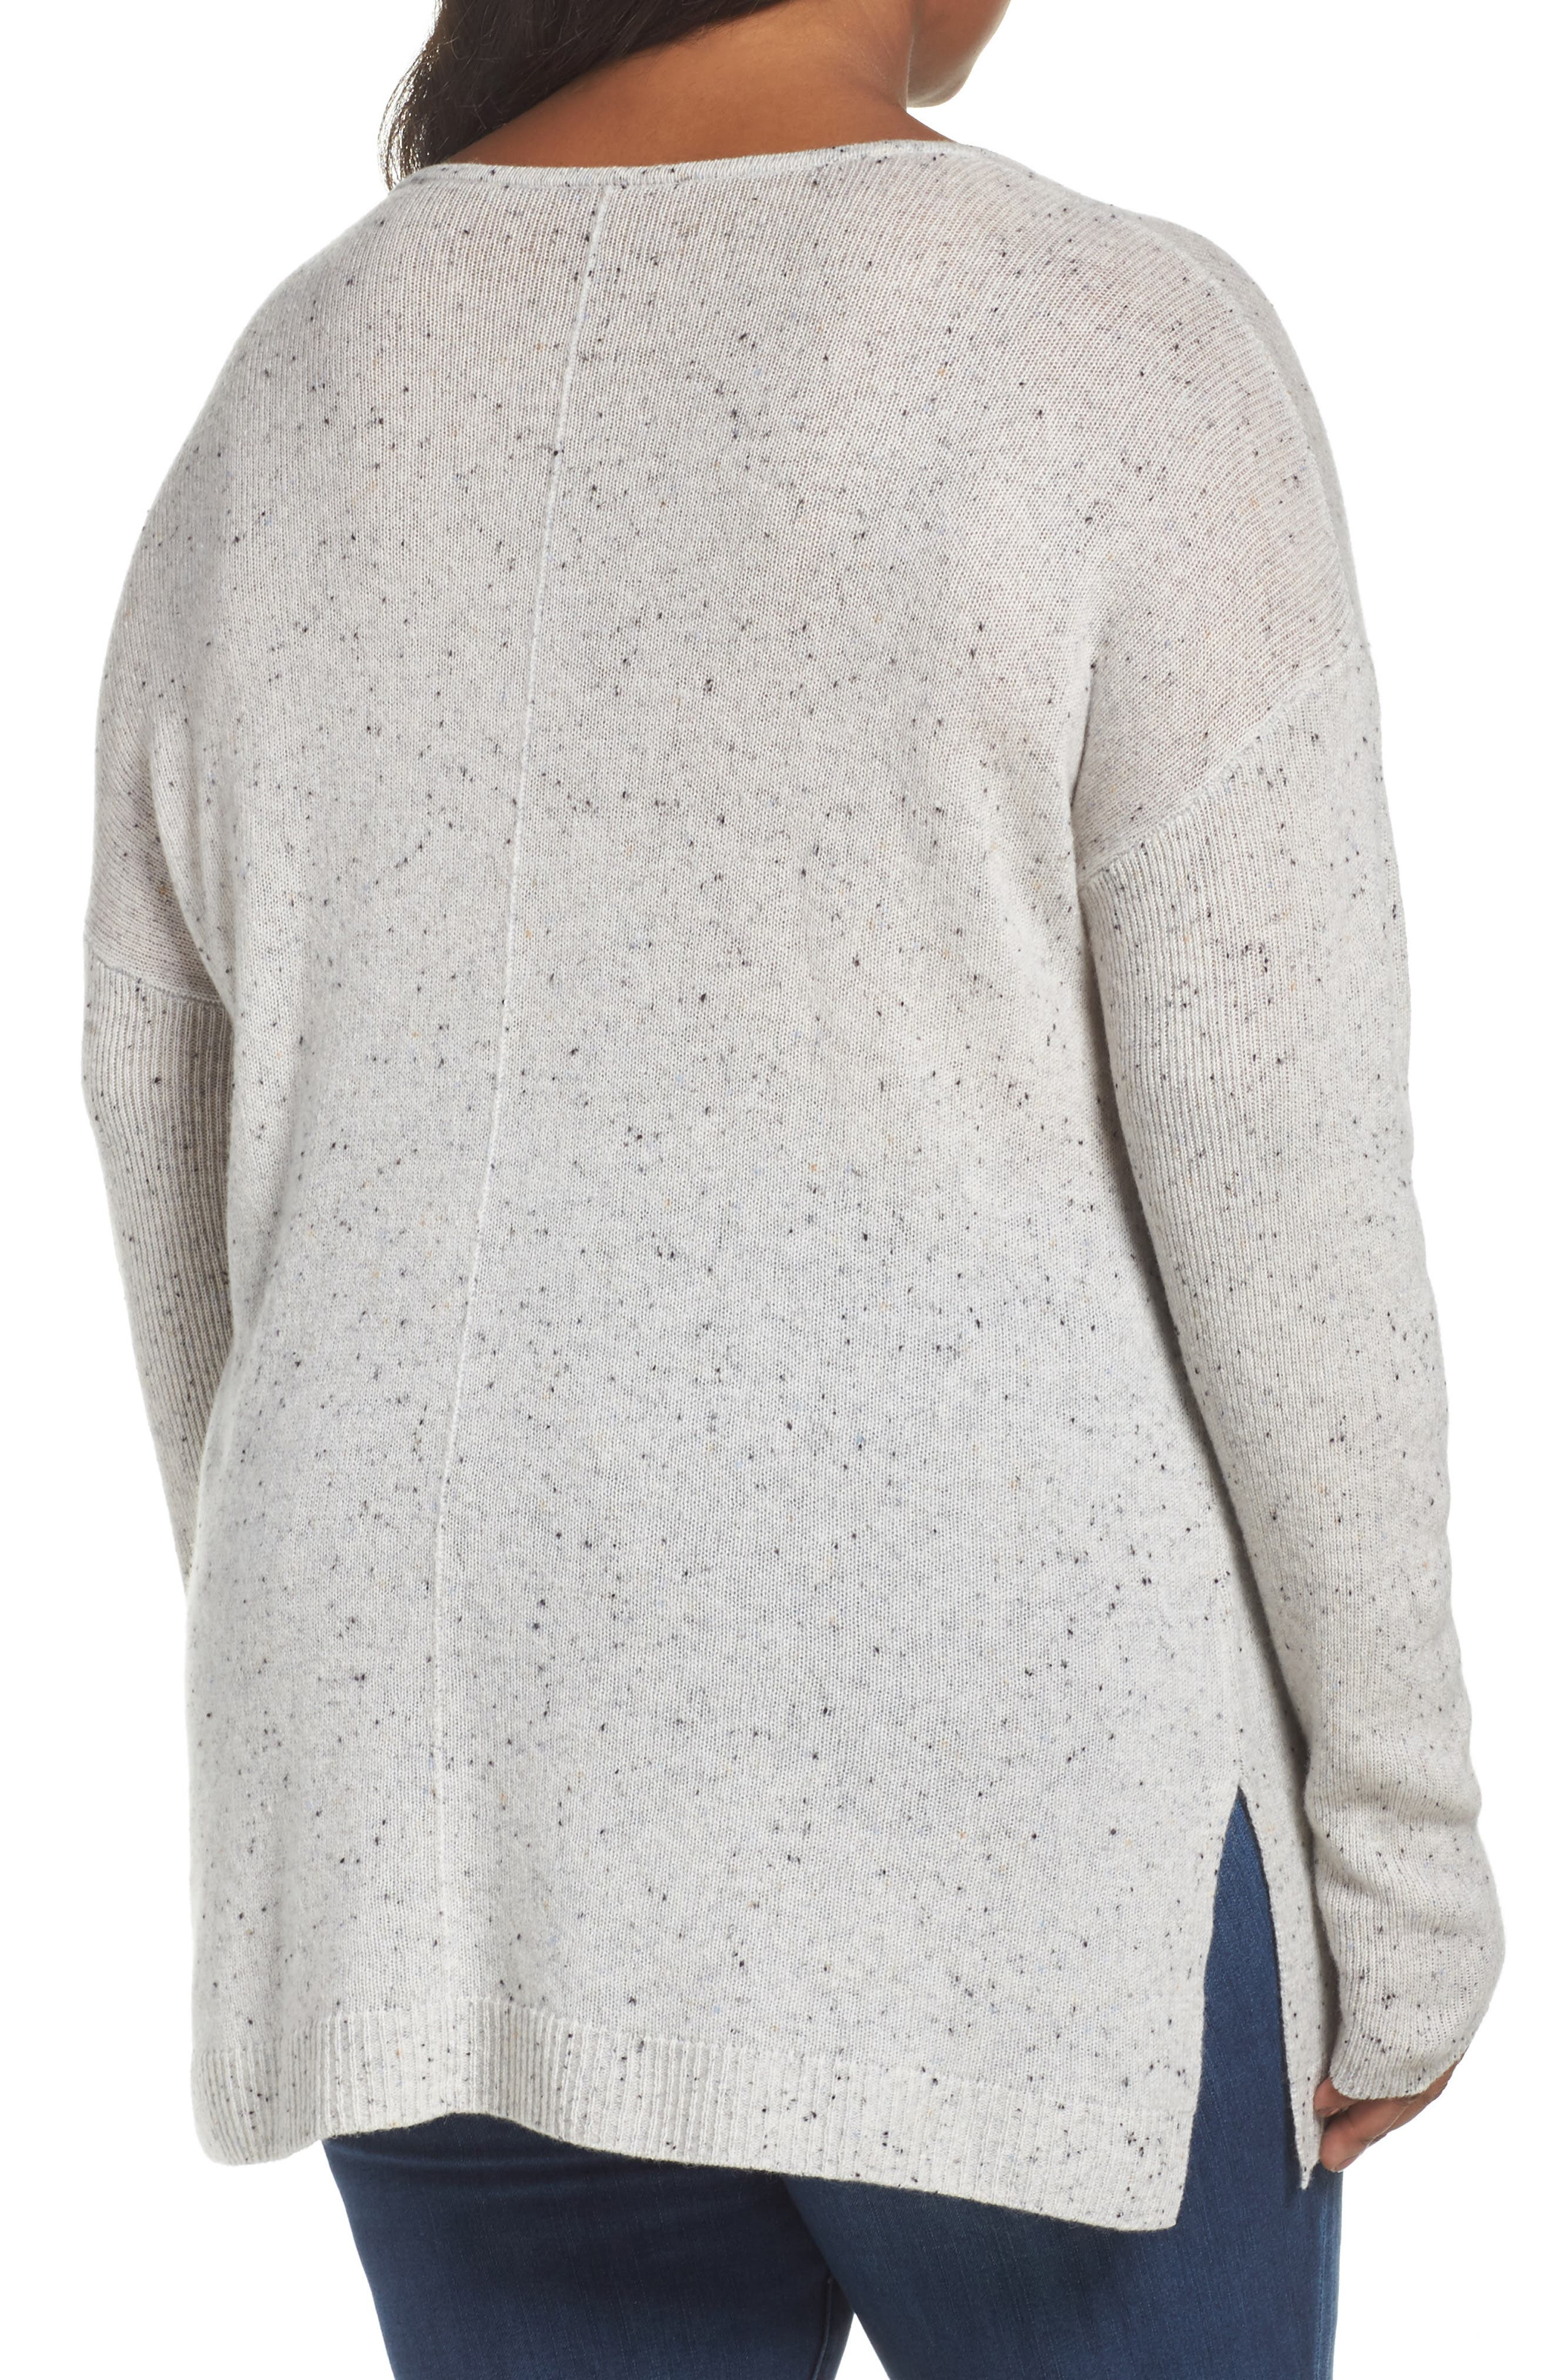 Easy V-Neck Wool & Cashmere Pullover,                             Alternate thumbnail 2, color,                             Grey Light Heather